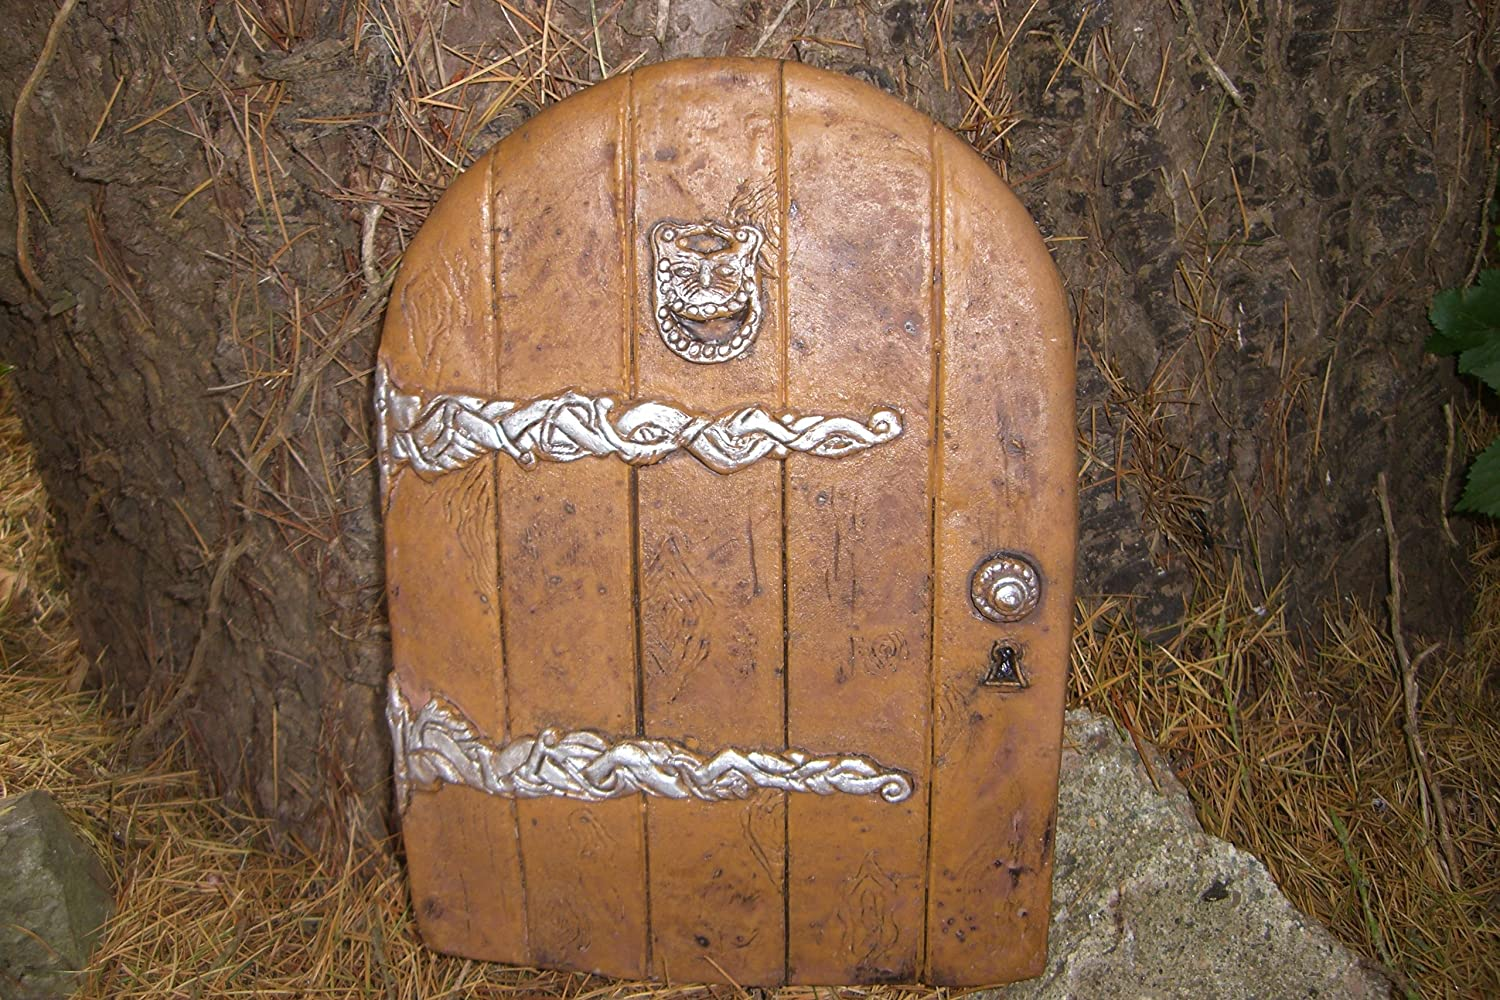 Amazon.com LARGE GARDEN FAIRY/HOBBIT DOOR IDEAL FOR GARDENS AND BOTTOM OF TREES by Penfound Home u0026 Kitchen & Amazon.com: LARGE GARDEN FAIRY/HOBBIT DOOR IDEAL FOR GARDENS AND ...